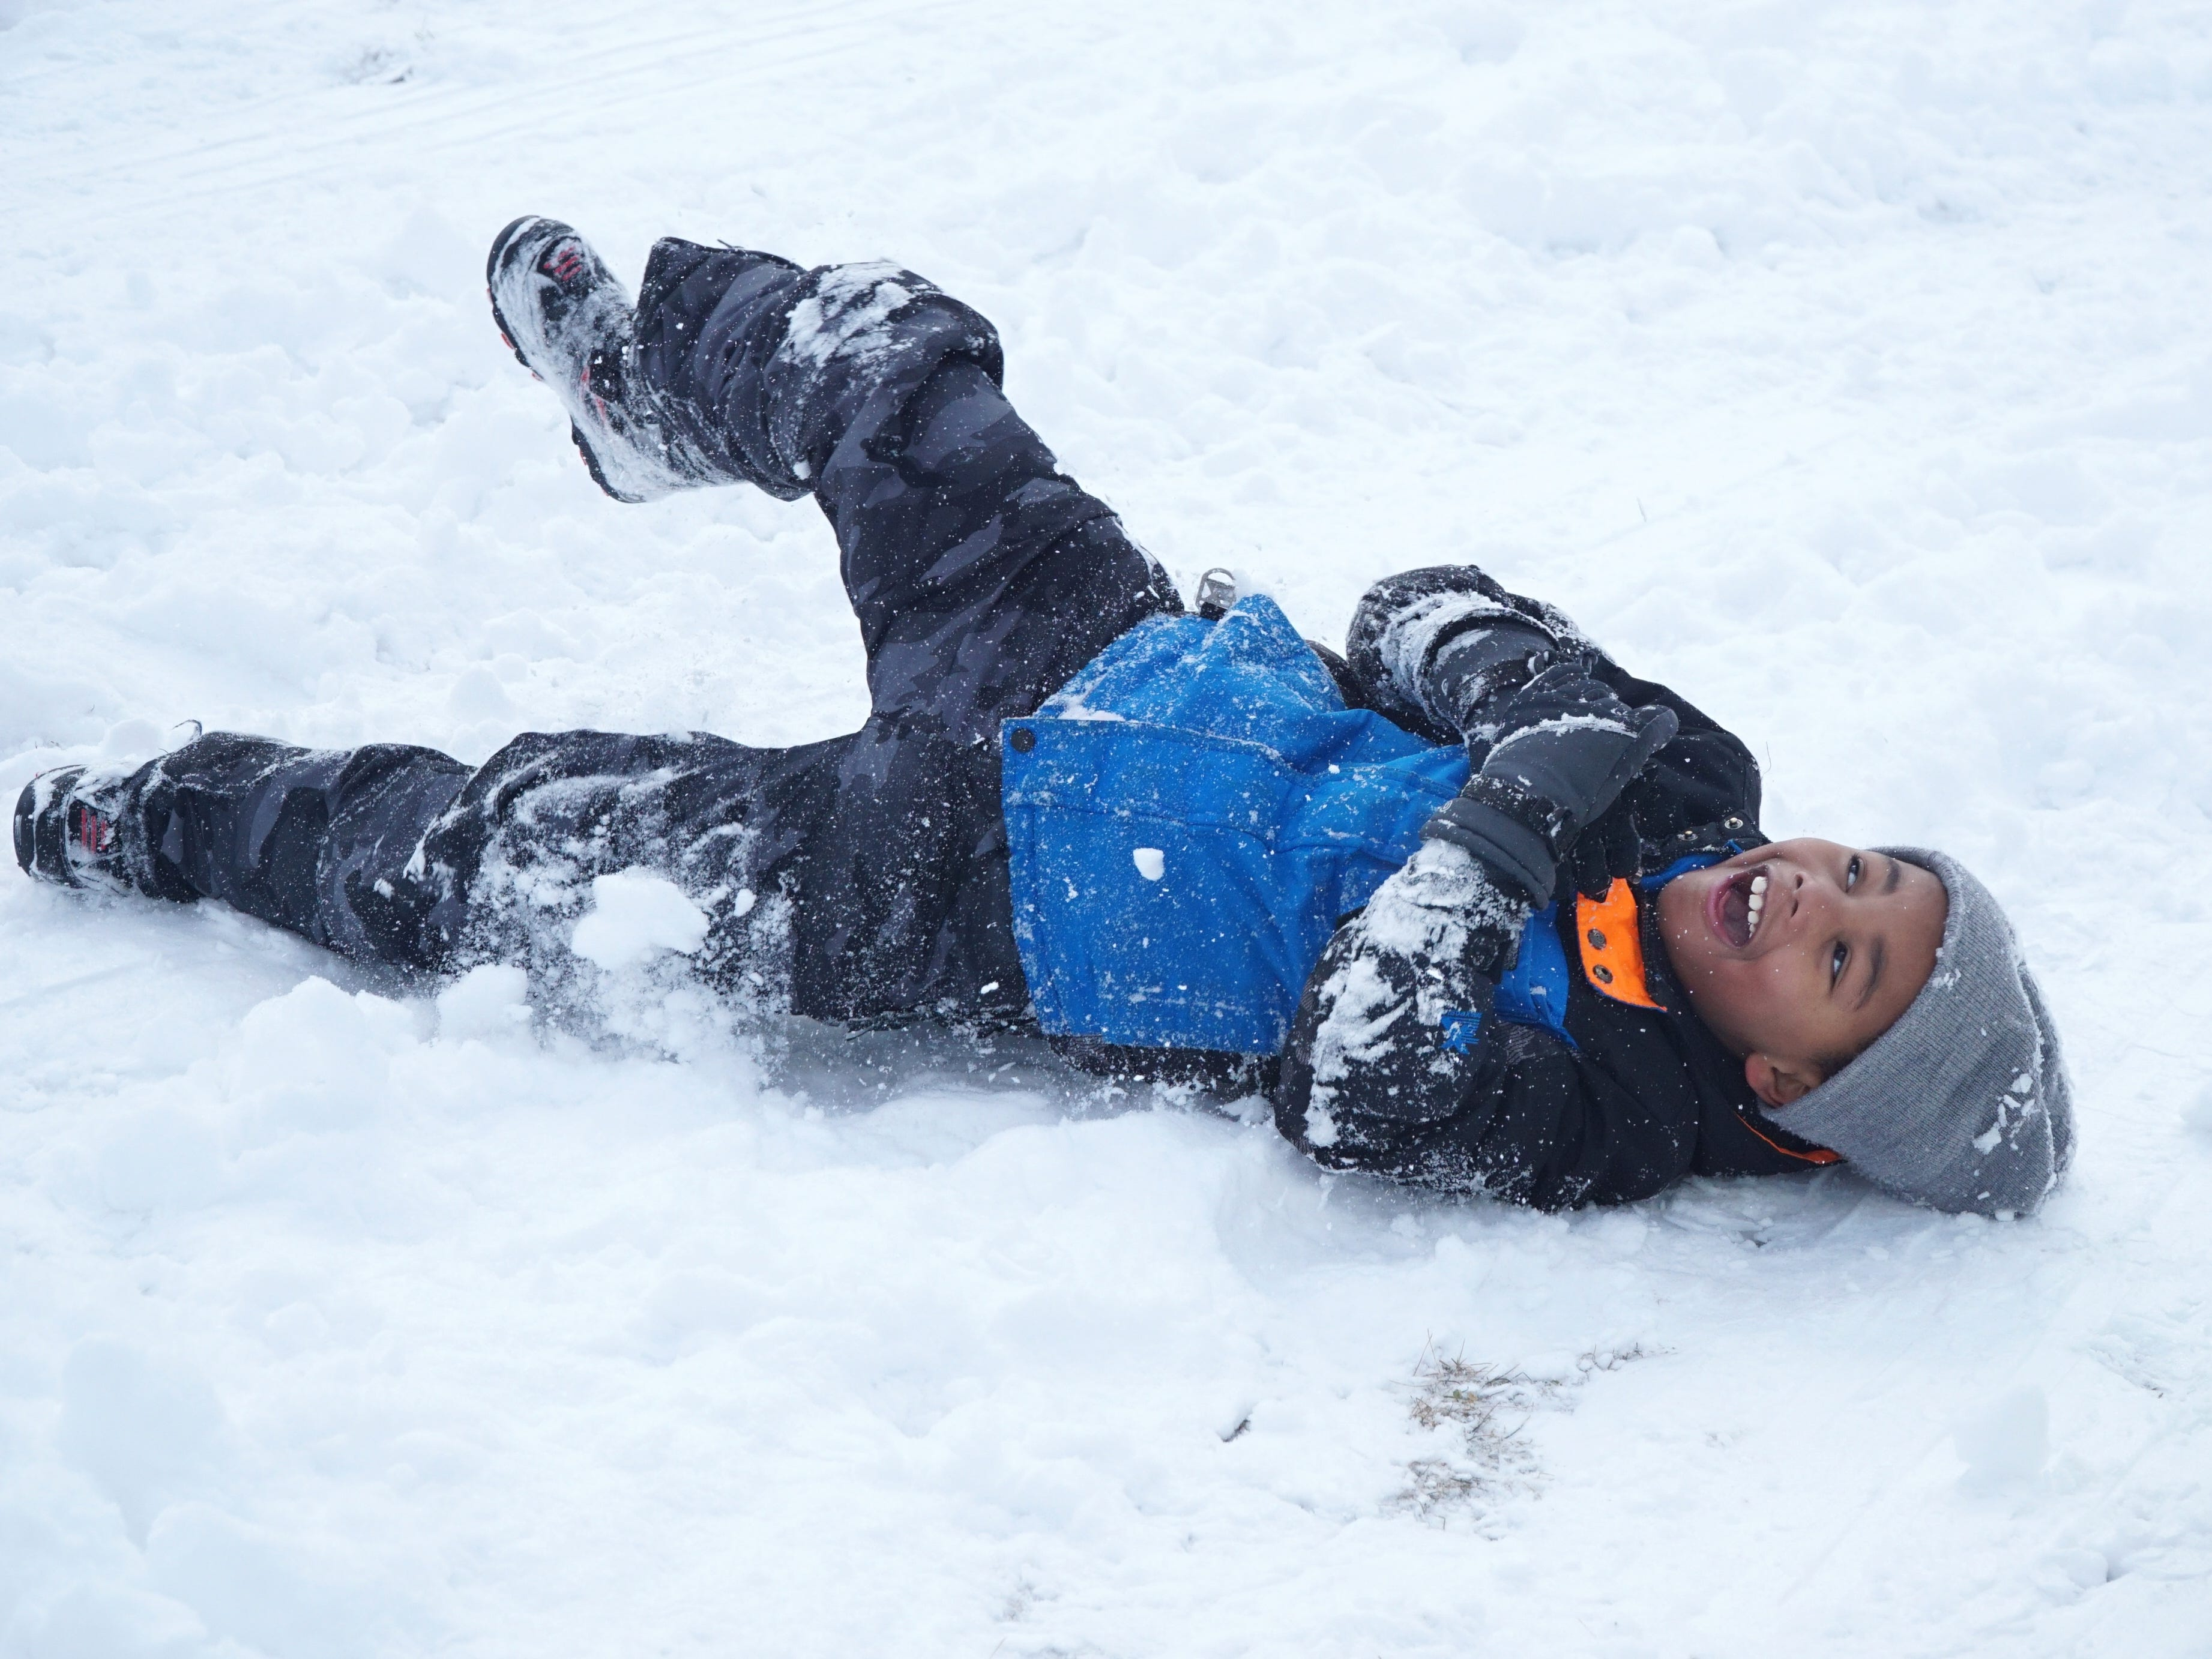 Elijah Marbry goes sled-less as he tumbles down the hill in Farmington off Shiawasee on Feb. 18. Marbry was there with his mom and young sister - enjoying a day off school.